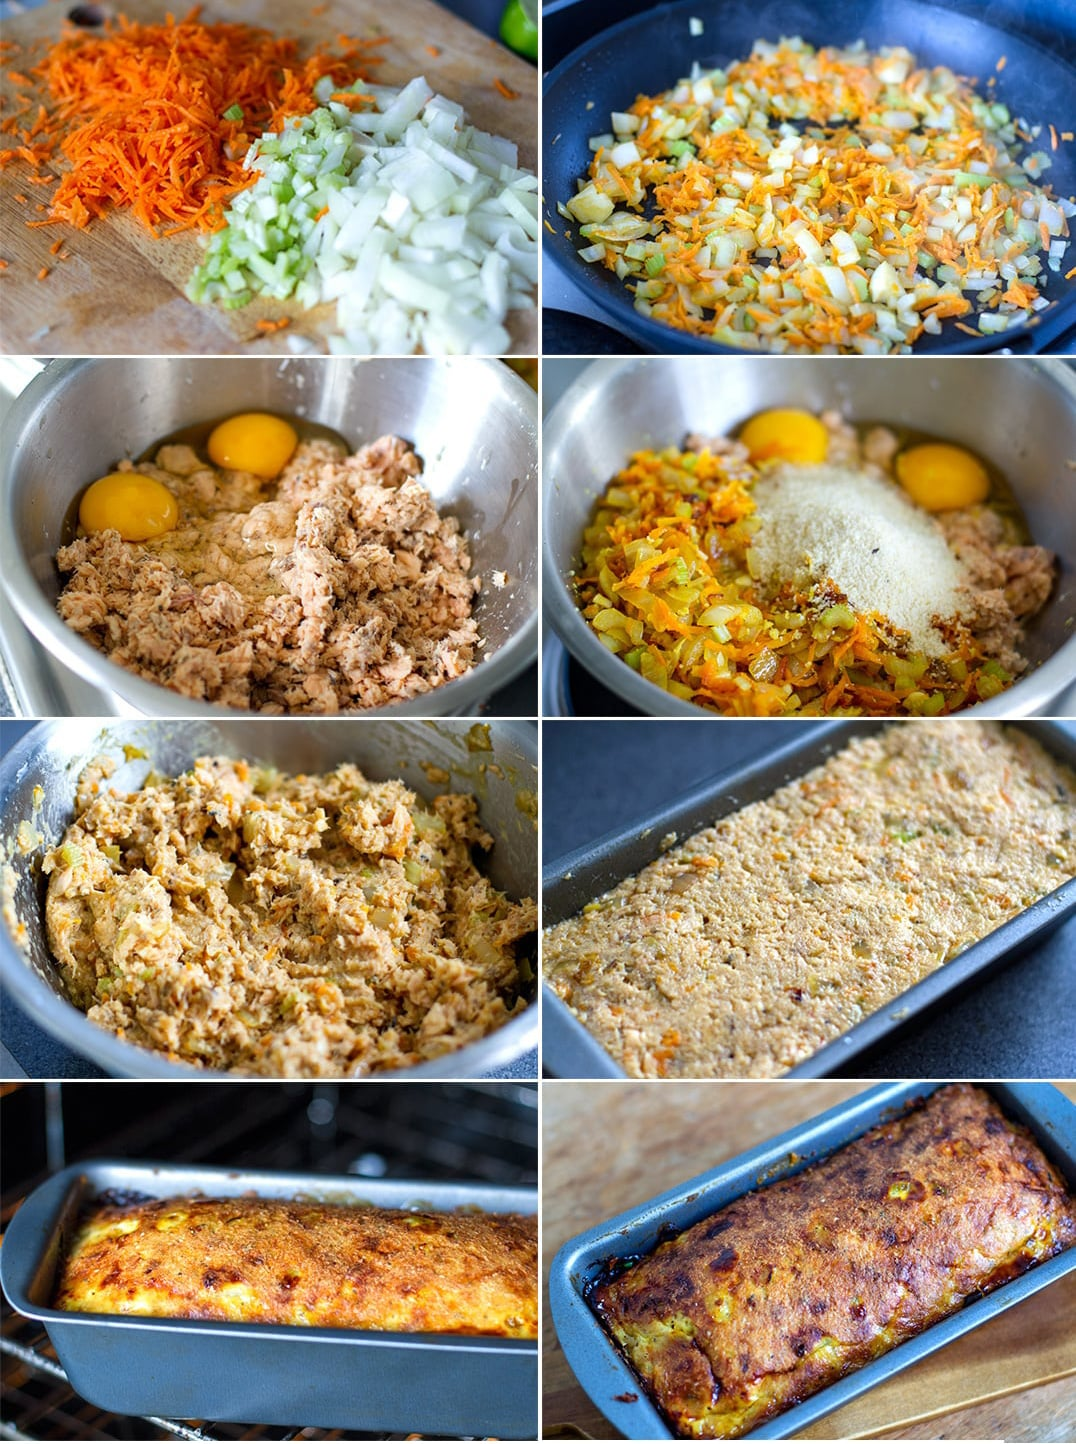 Canned salmon loaf recipe steps